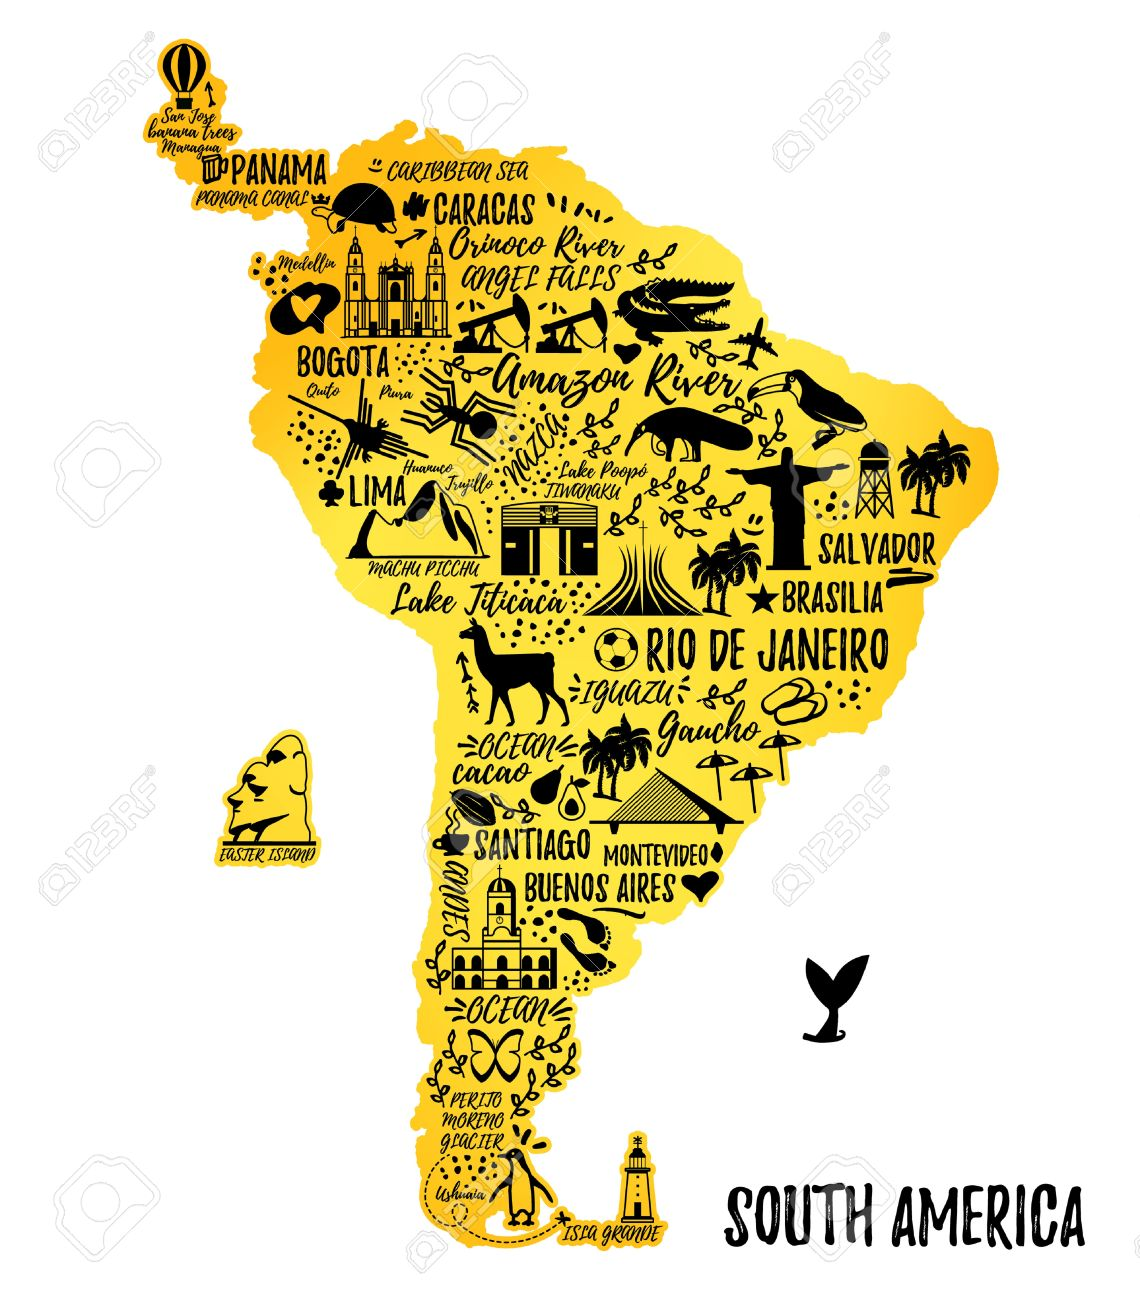 Typography Poster. South America Map. South America Travel Guide ...